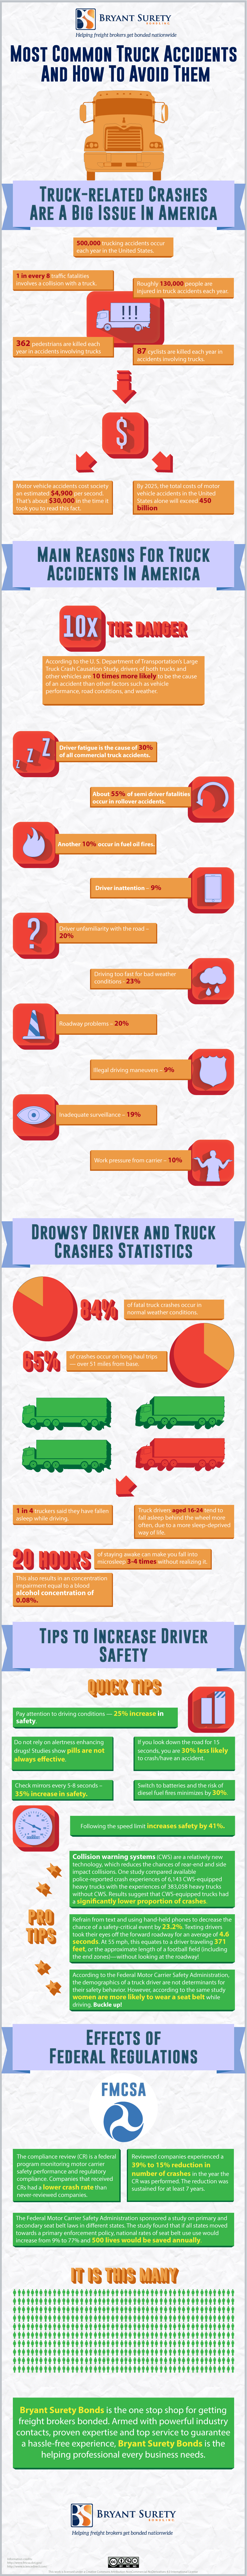 Most Common Truck Accidents and How to Avoid Them